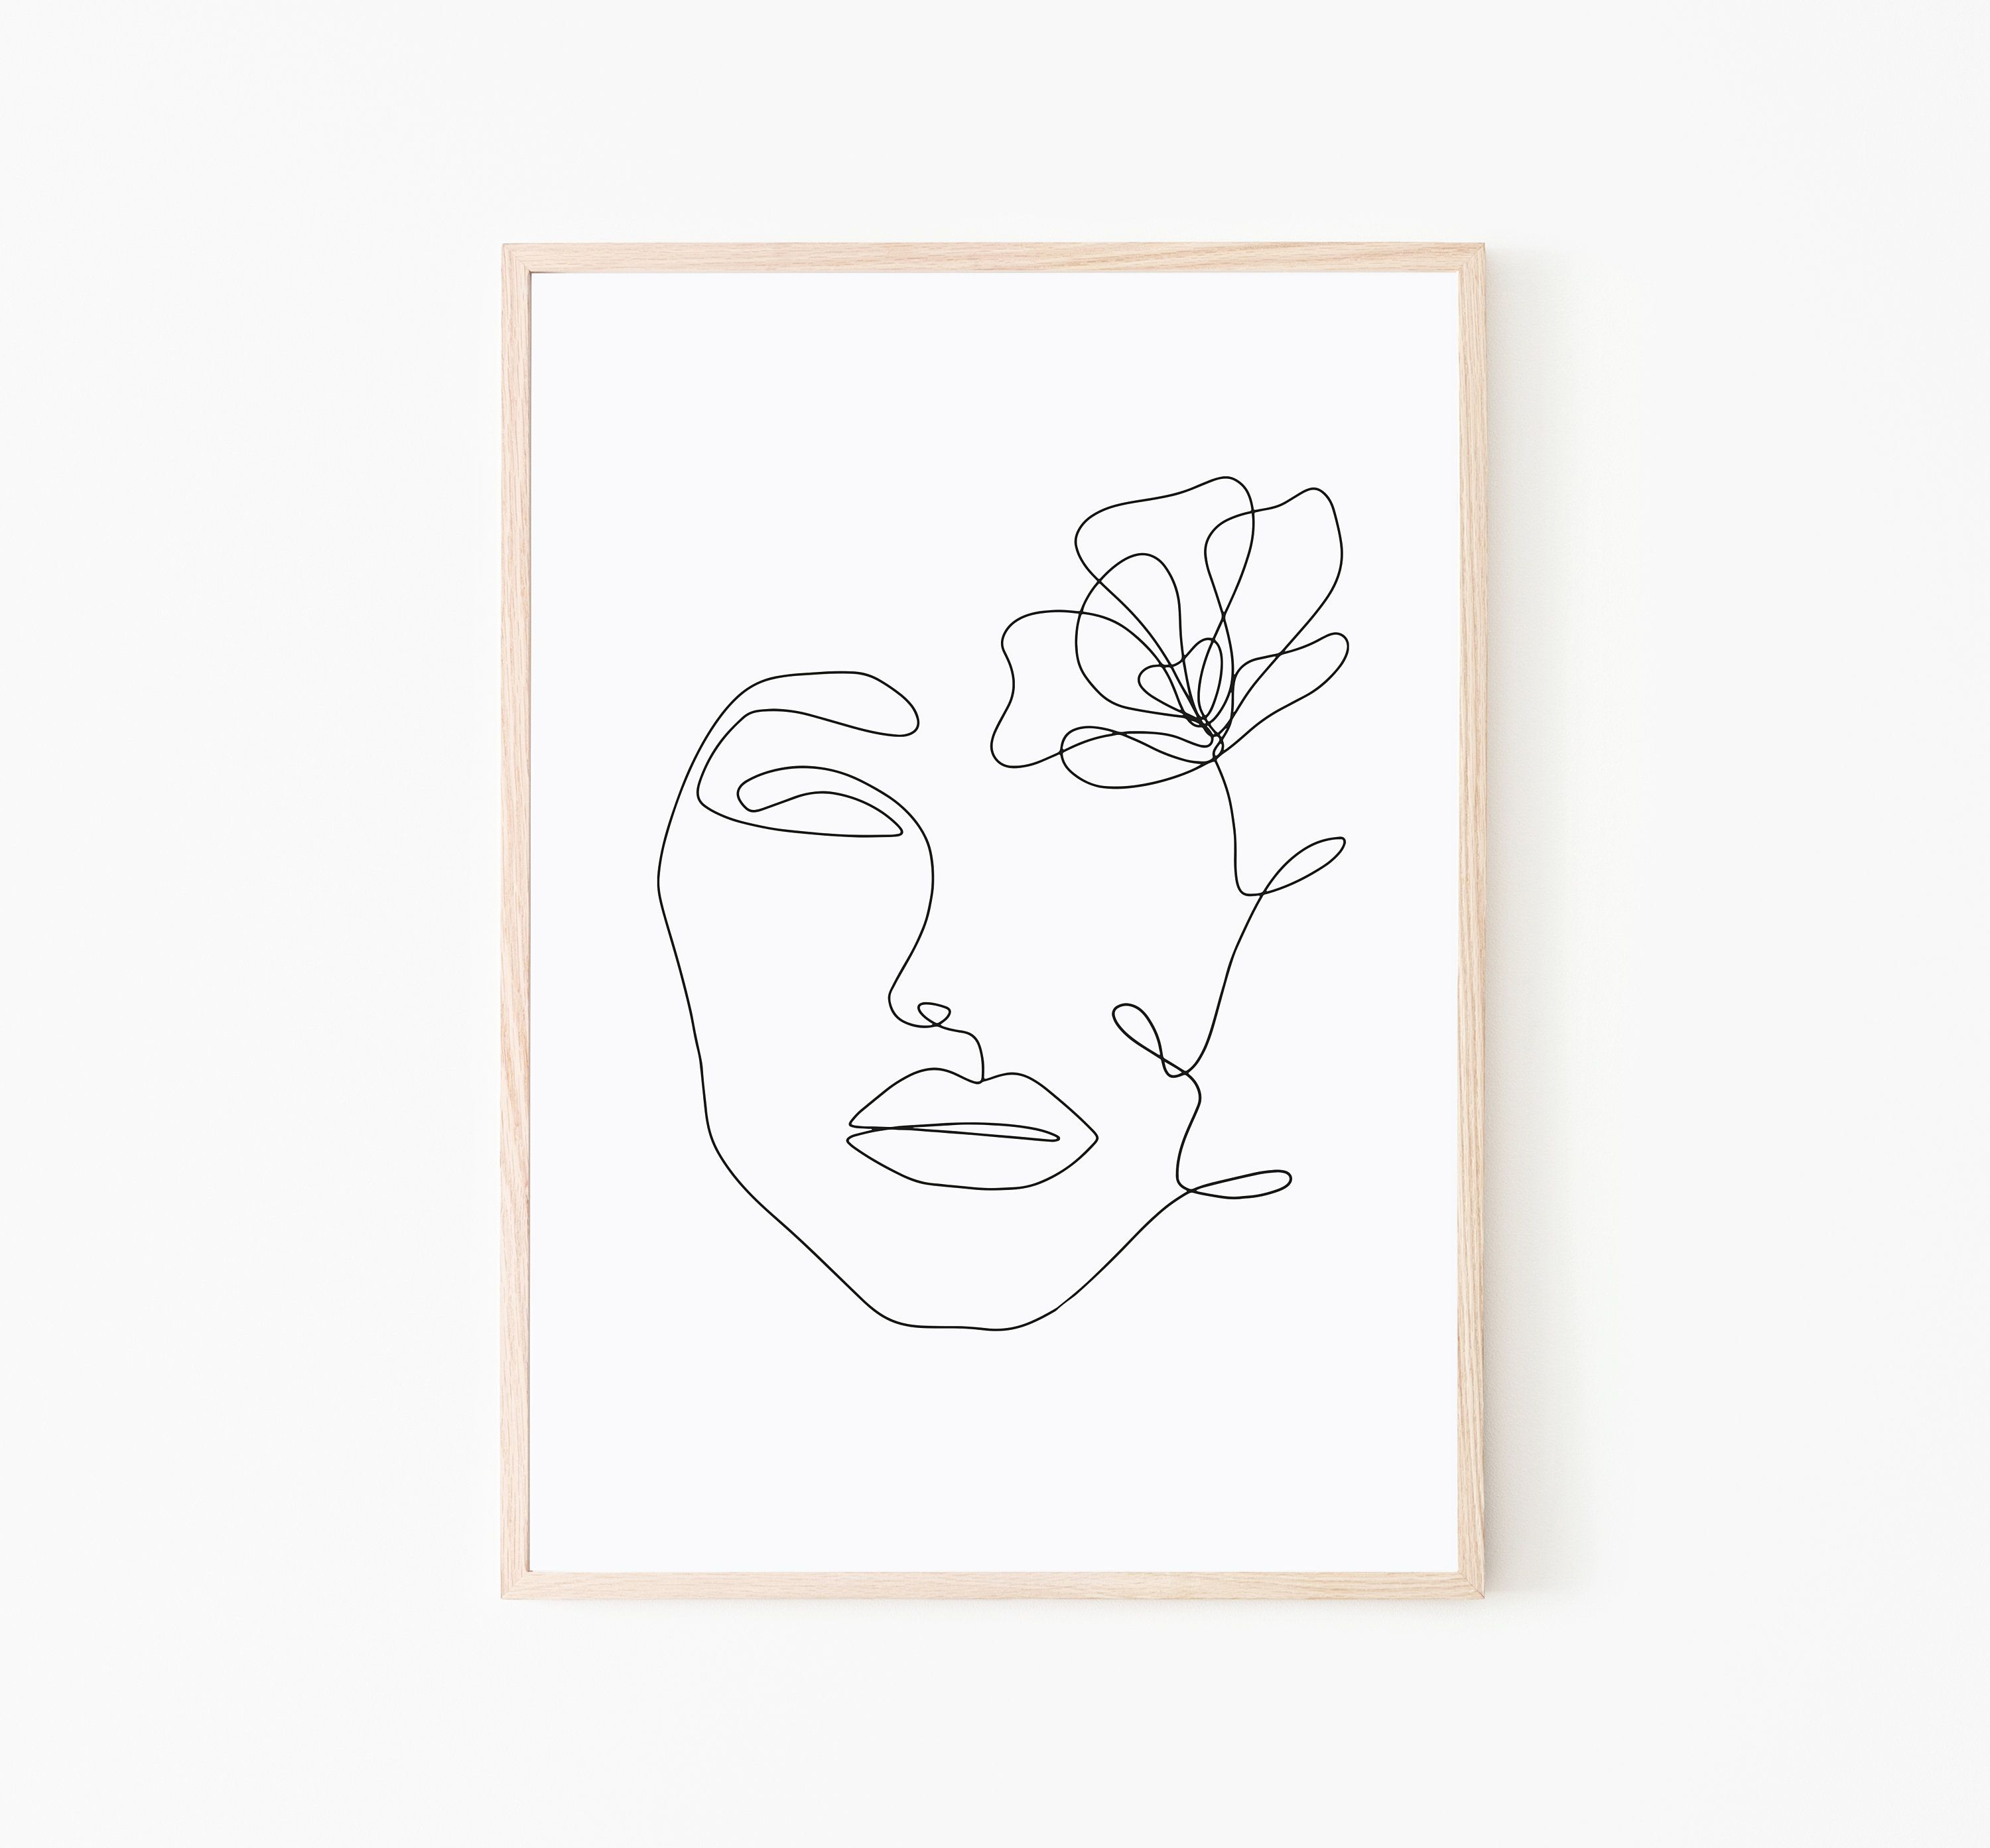 One Line Print Line Drawing Print Female Face Drawing Portrait In One Line Art Beauty Illustration Print Fash Line Art Drawings Abstract Line Art Line Art